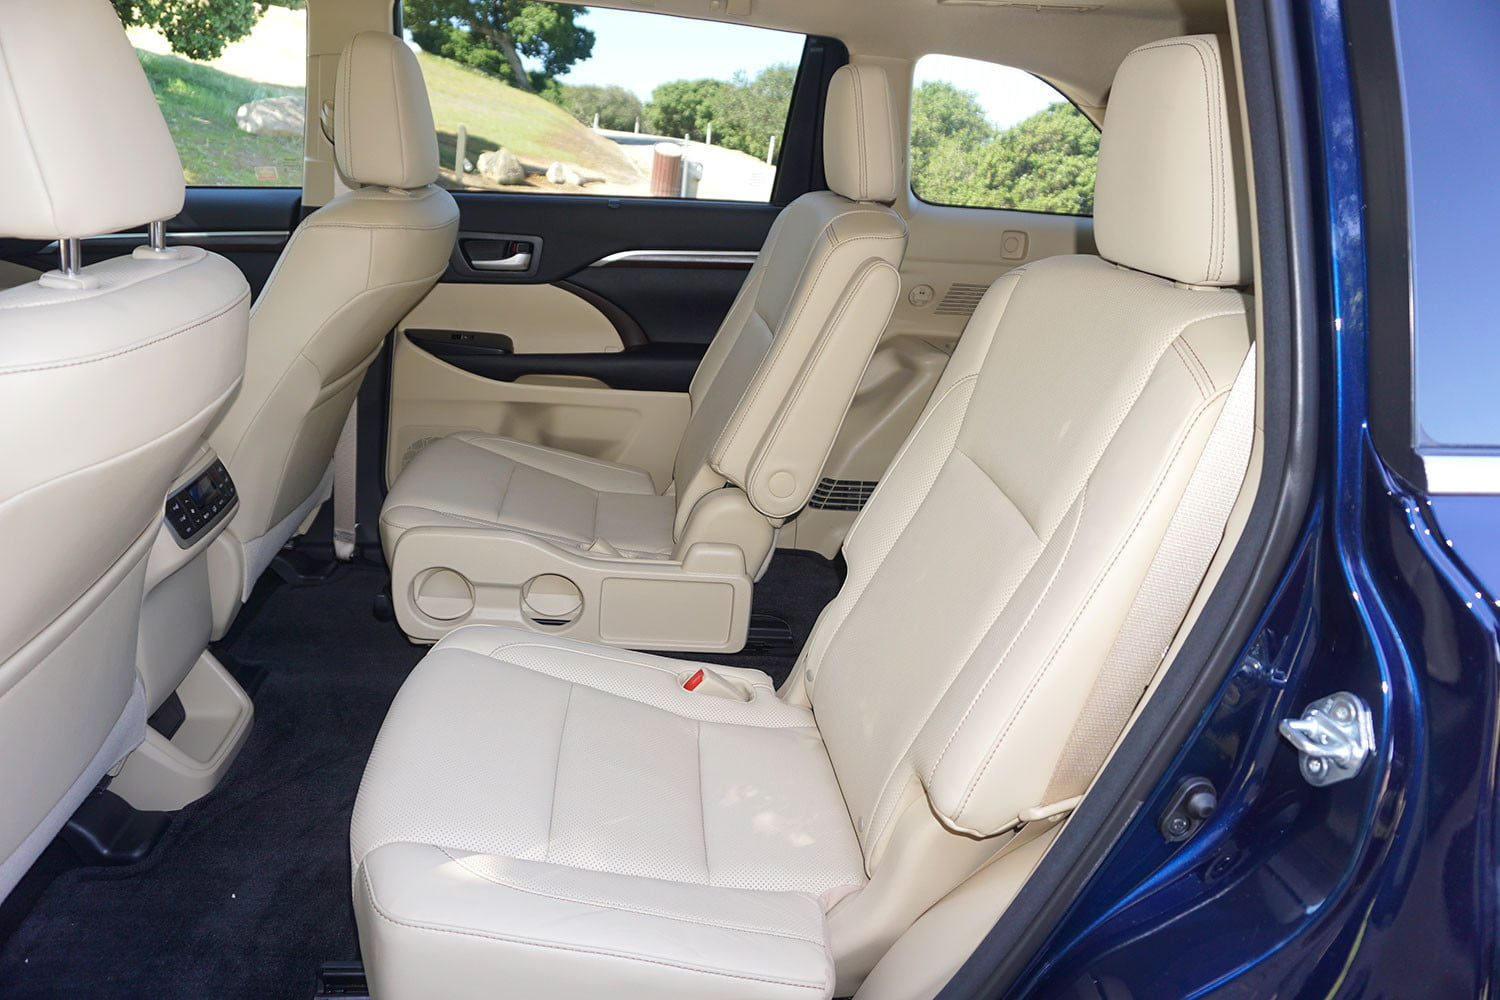 Toyota Highlander Captains Chairs 2015 Toyota Highlander Captains Chairs Autos Post